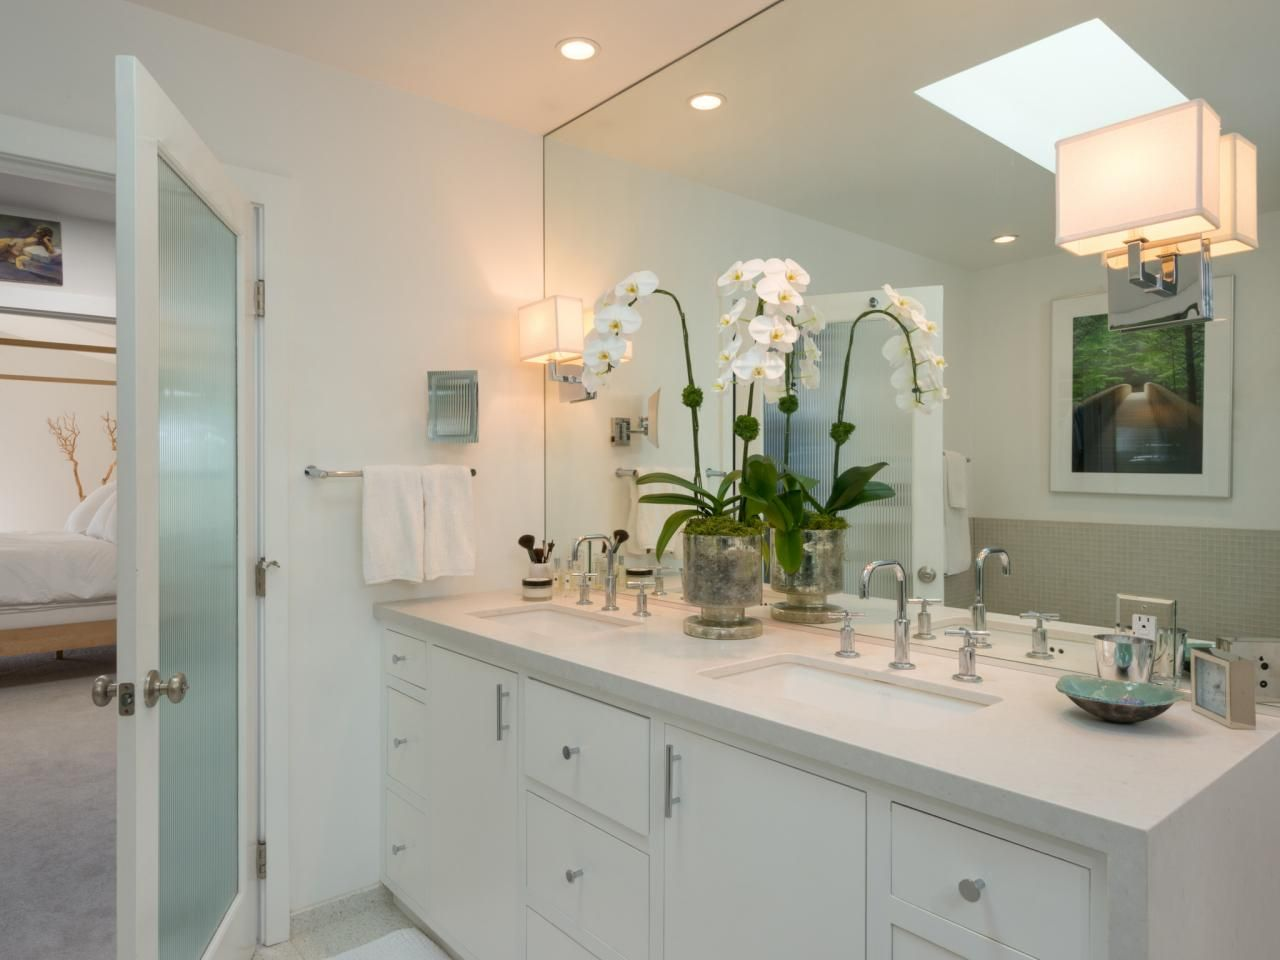 A White Caesarstone Countertop Wraps Down One Side Of This